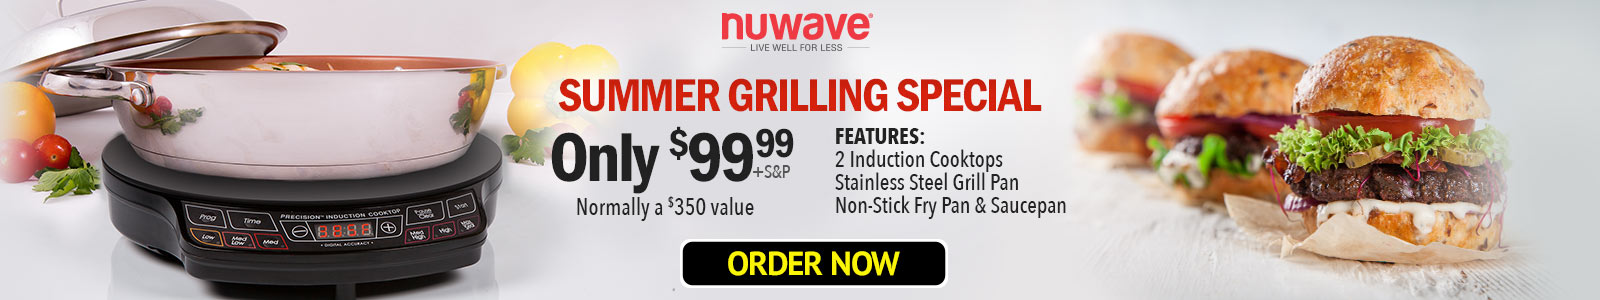 Summer Grilling Special, Only $99.99